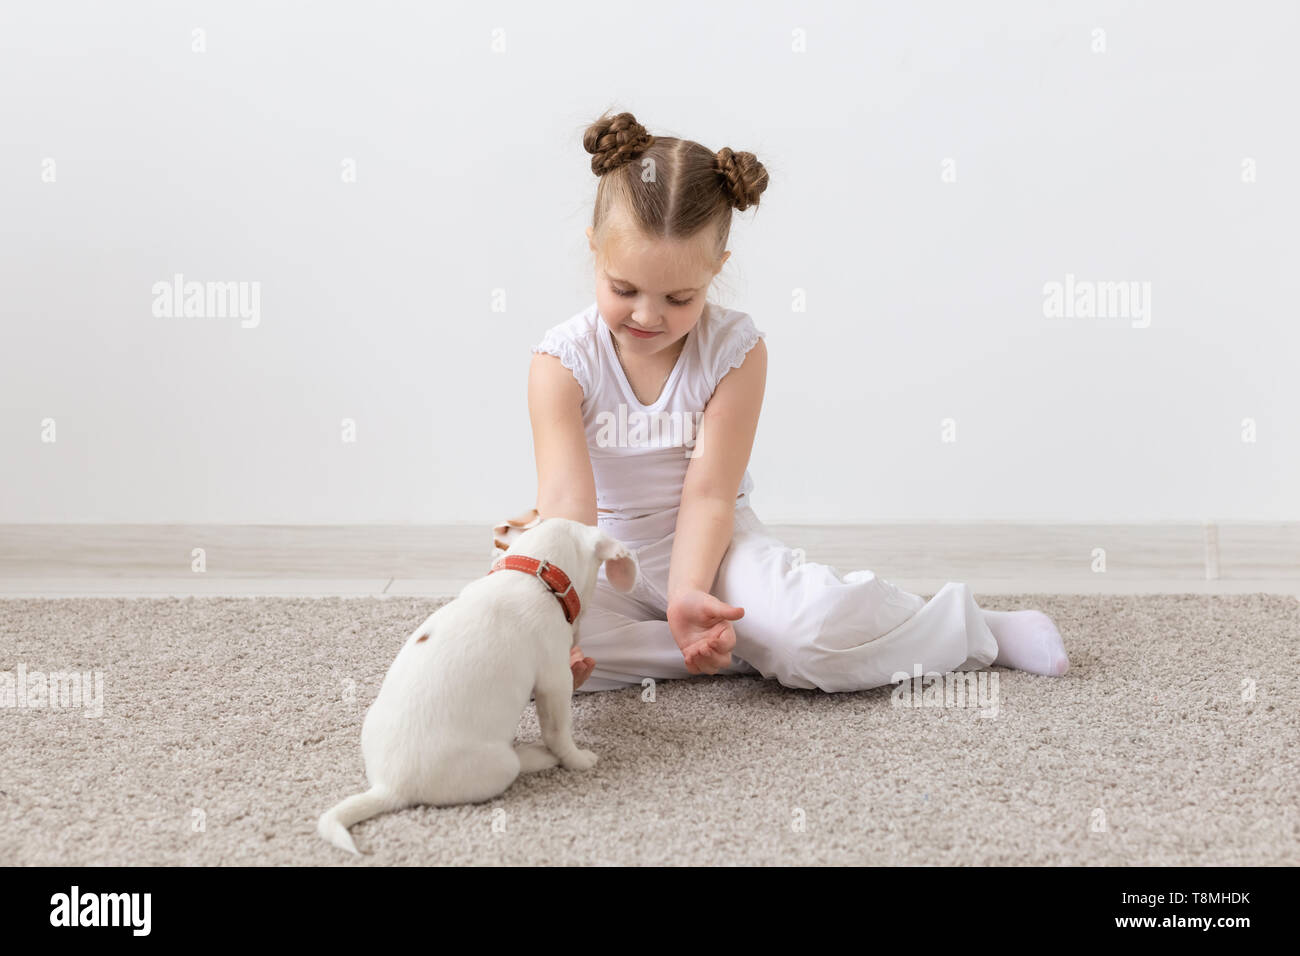 Children and animal concept - Child girl and puppy dressed in pajamas sitting on the floor - Stock Image